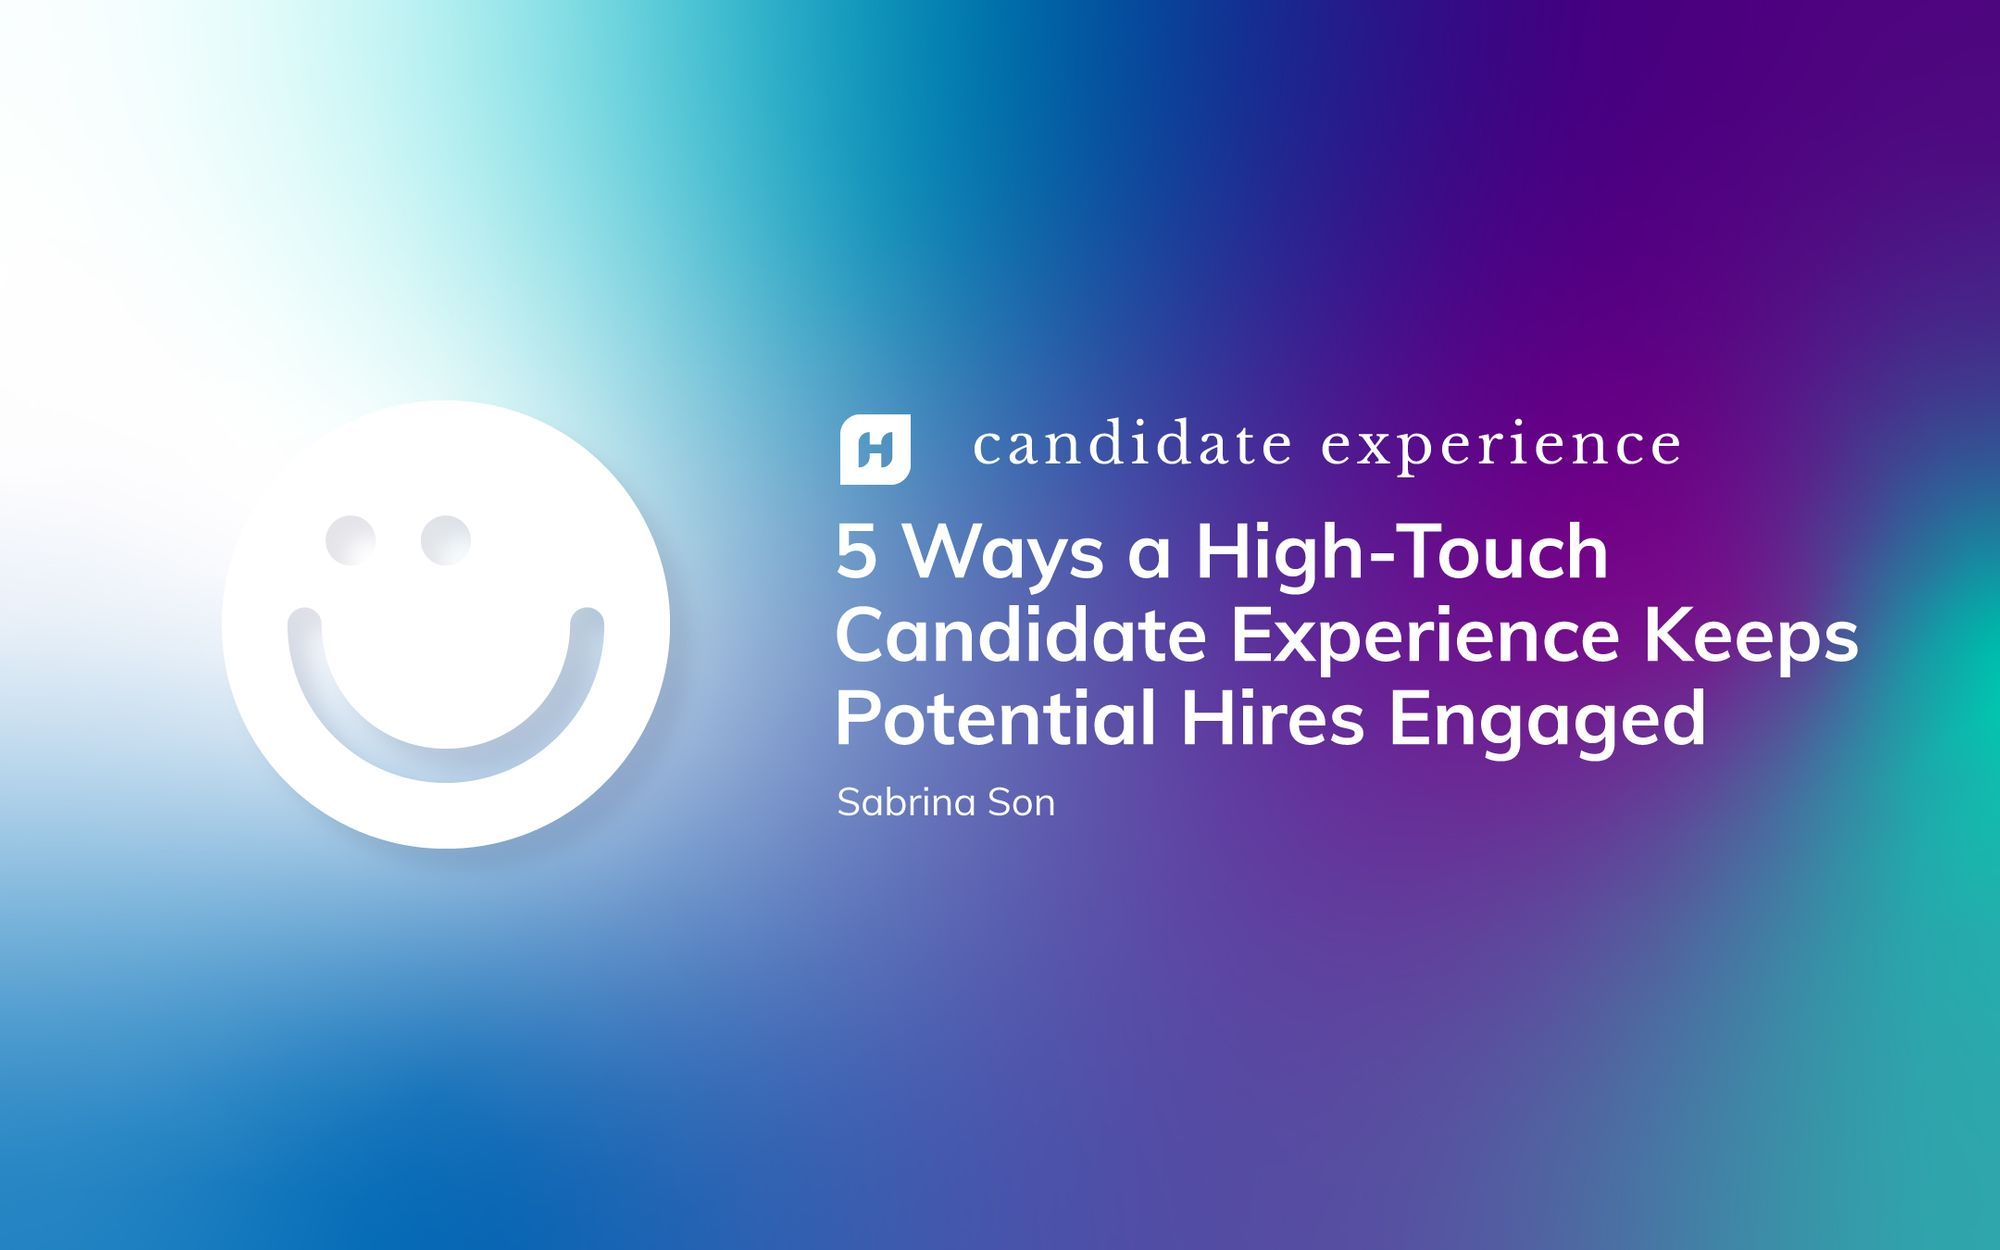 5 Ways a High-Touch Candidate Experience Keeps Potential Hires Engaged